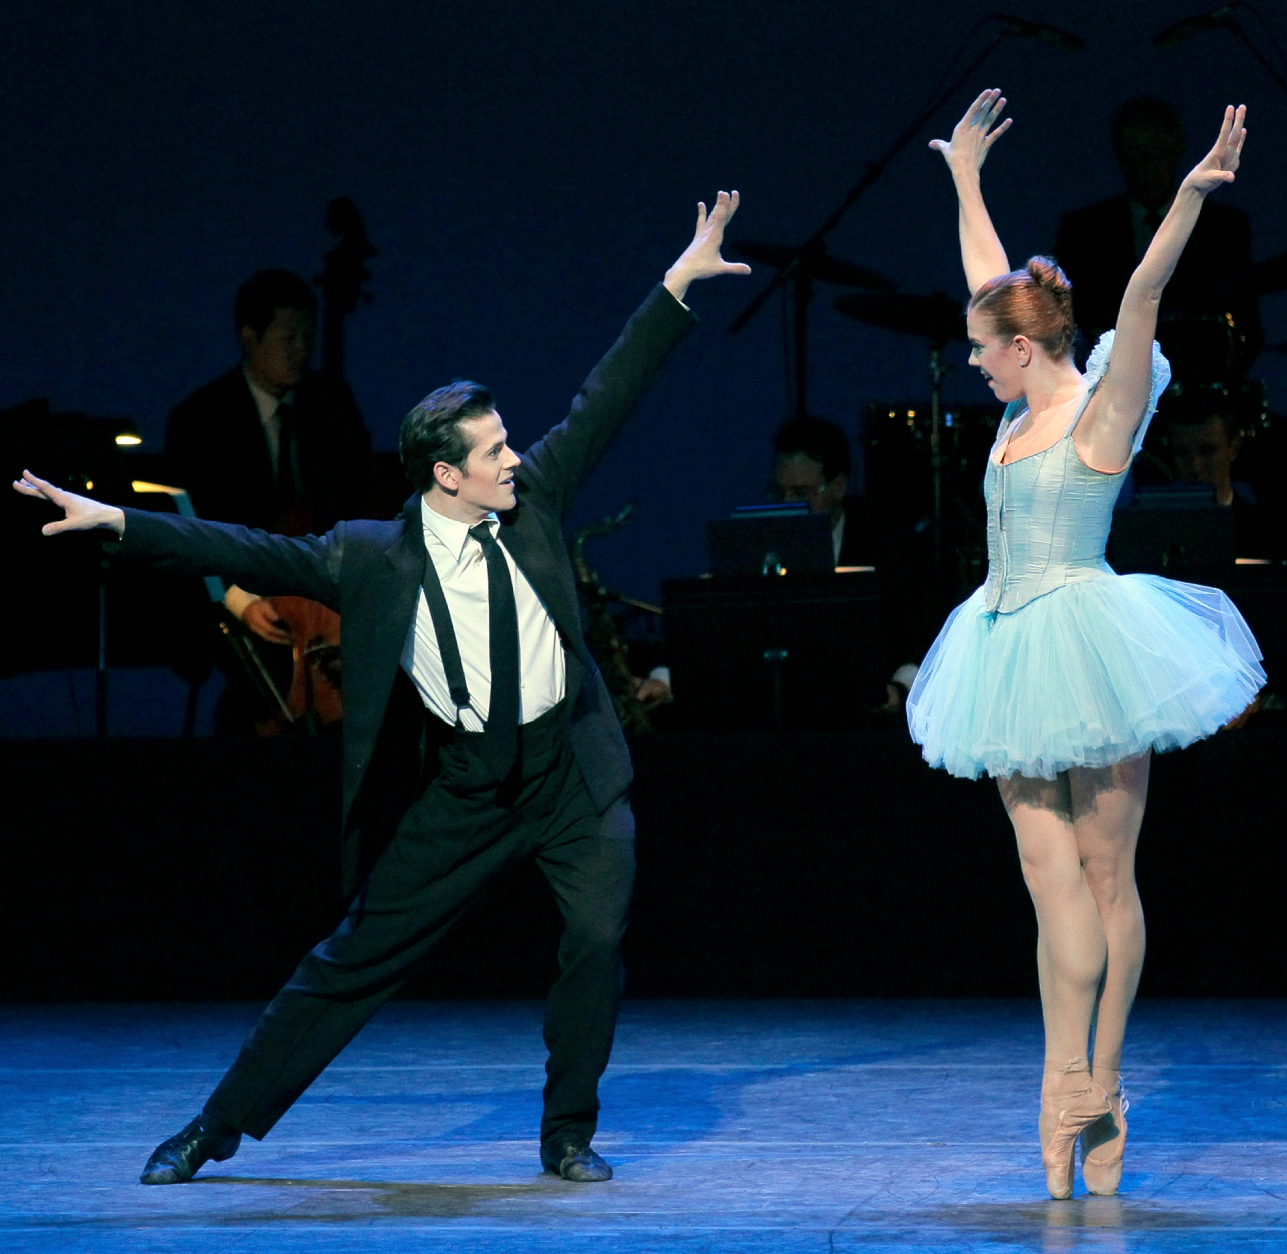 Savannah Lowery (as Blossom in a blue tutu), and Robert Fairchild (as the Musician in a black tie and suit).